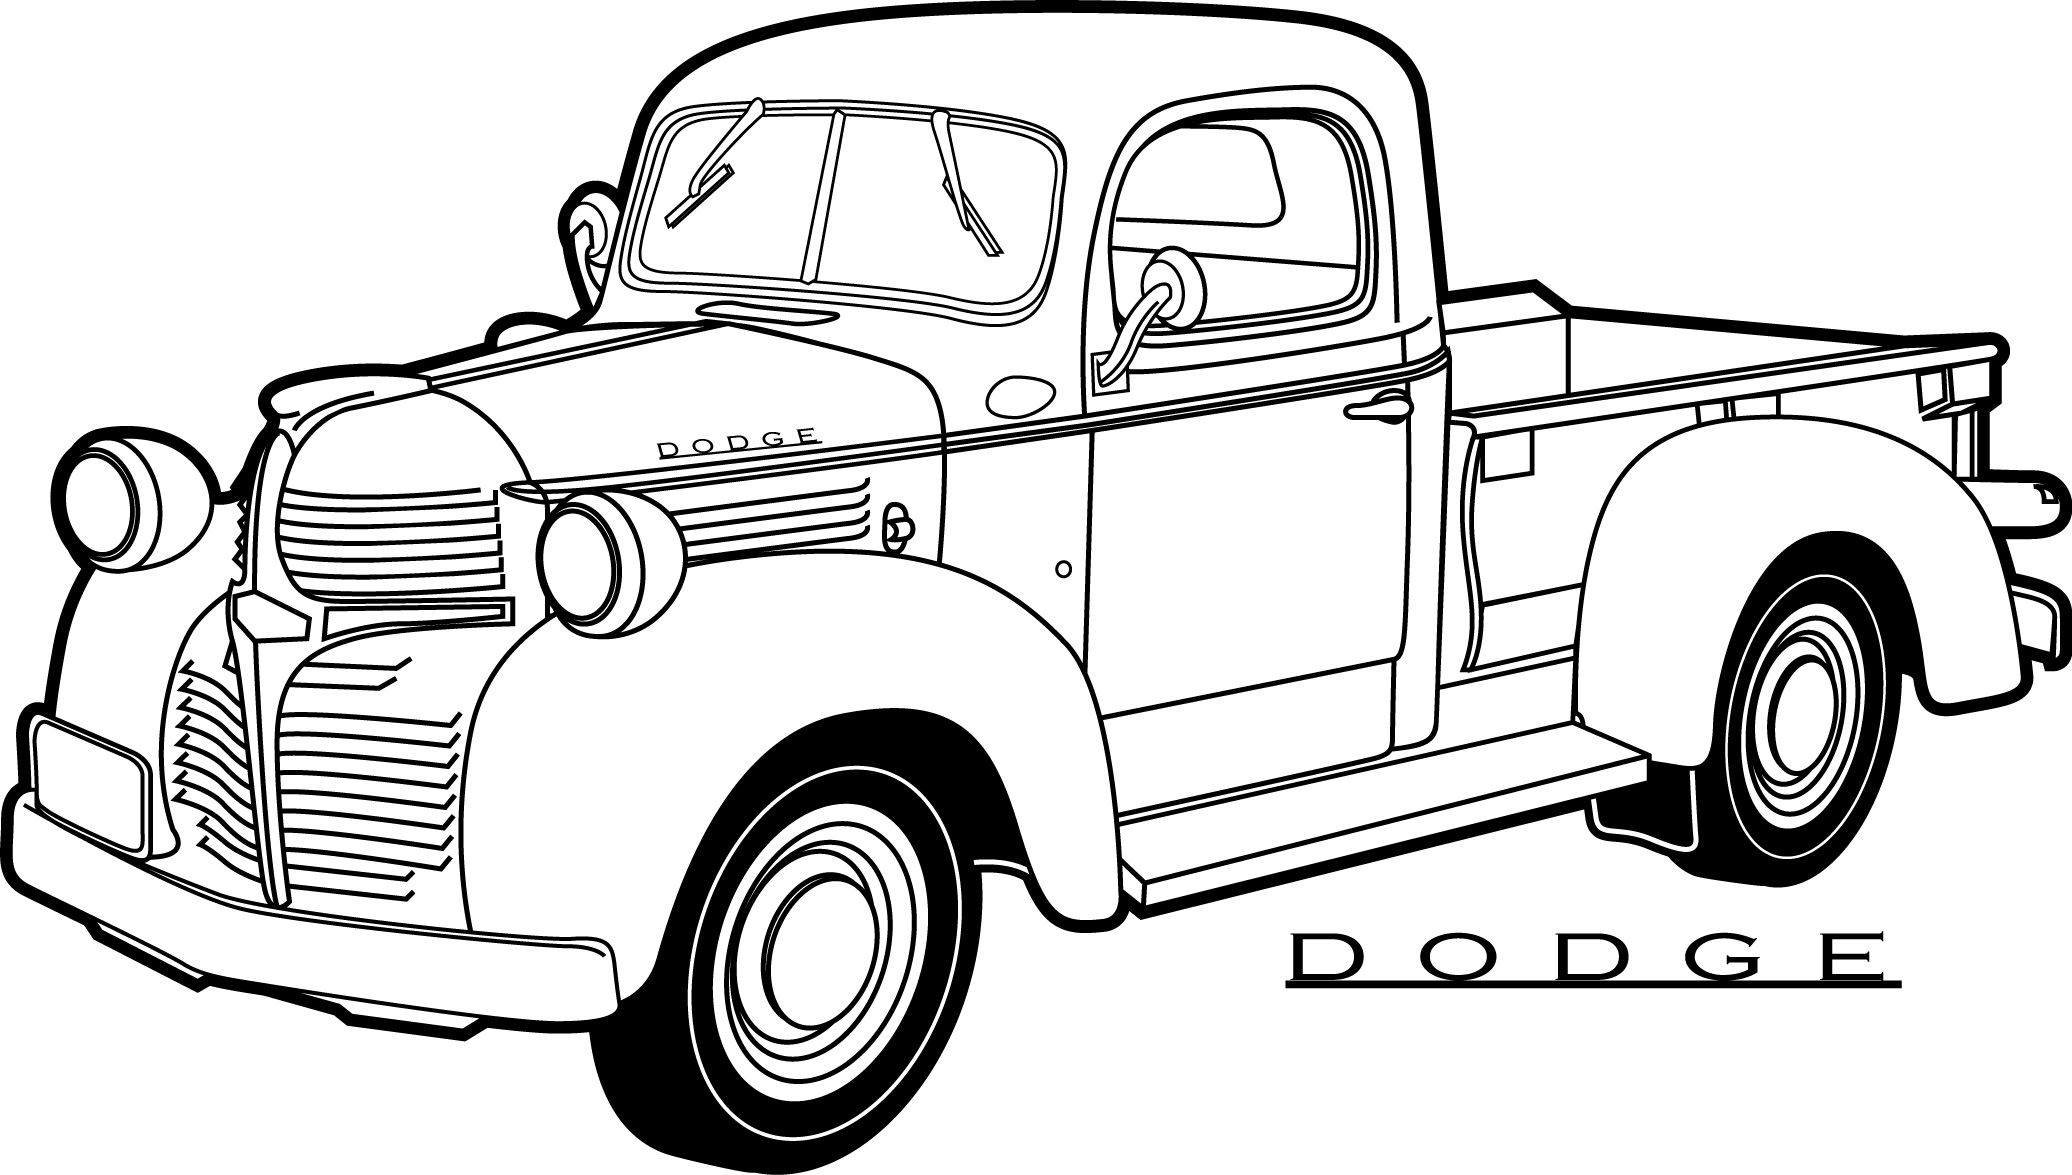 Hot Rod Coloring Pages Coloring Pages for Adults Download Free Gallery Of Coloring Books and Pages Simple Hot Rod Coloring Pages Pinterest Printable